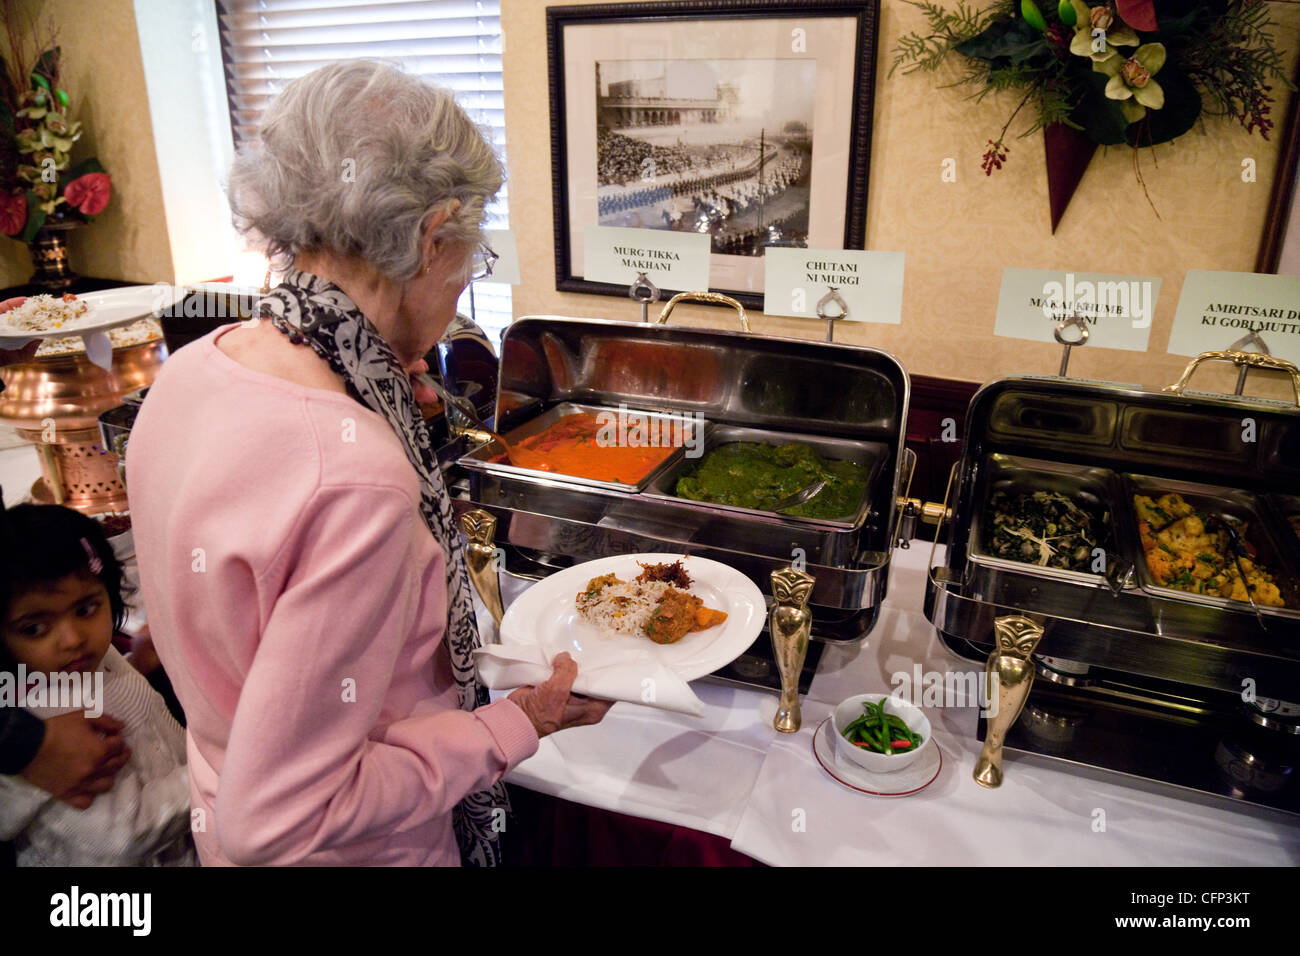 An elderly lady serving herself food in the Tamasha Indian restaurant, Bromley, Kent UK - Stock Image